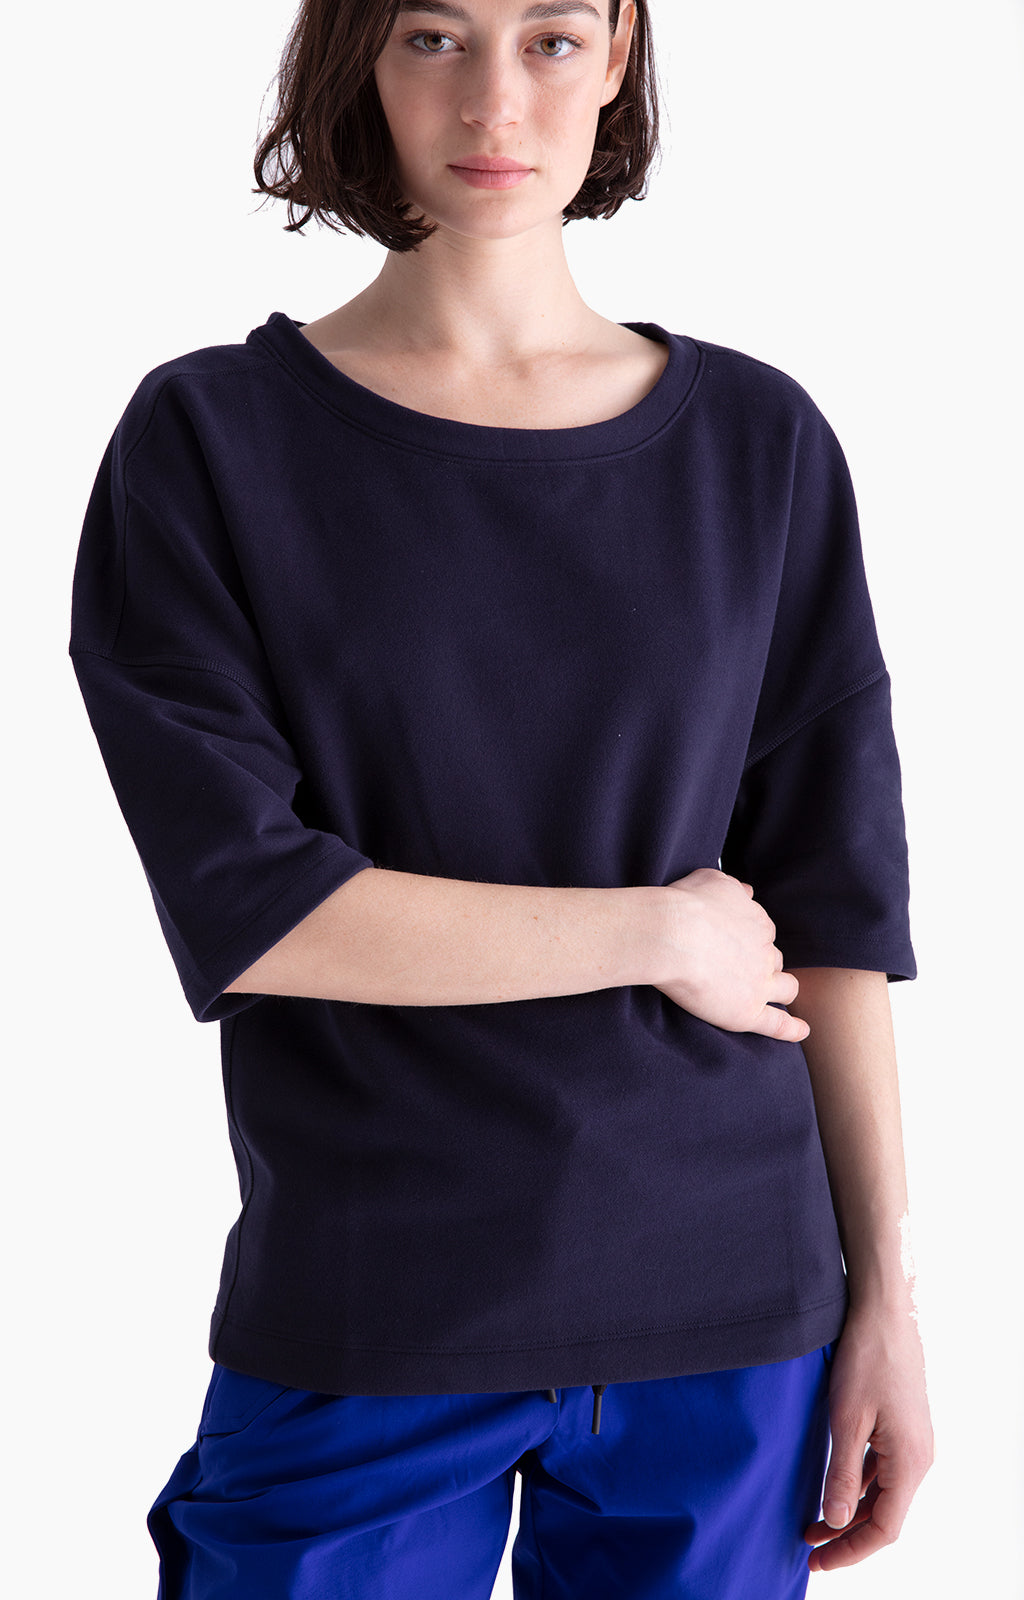 Integrity - Slouchy Travel Sweatshirt in Dark Blue